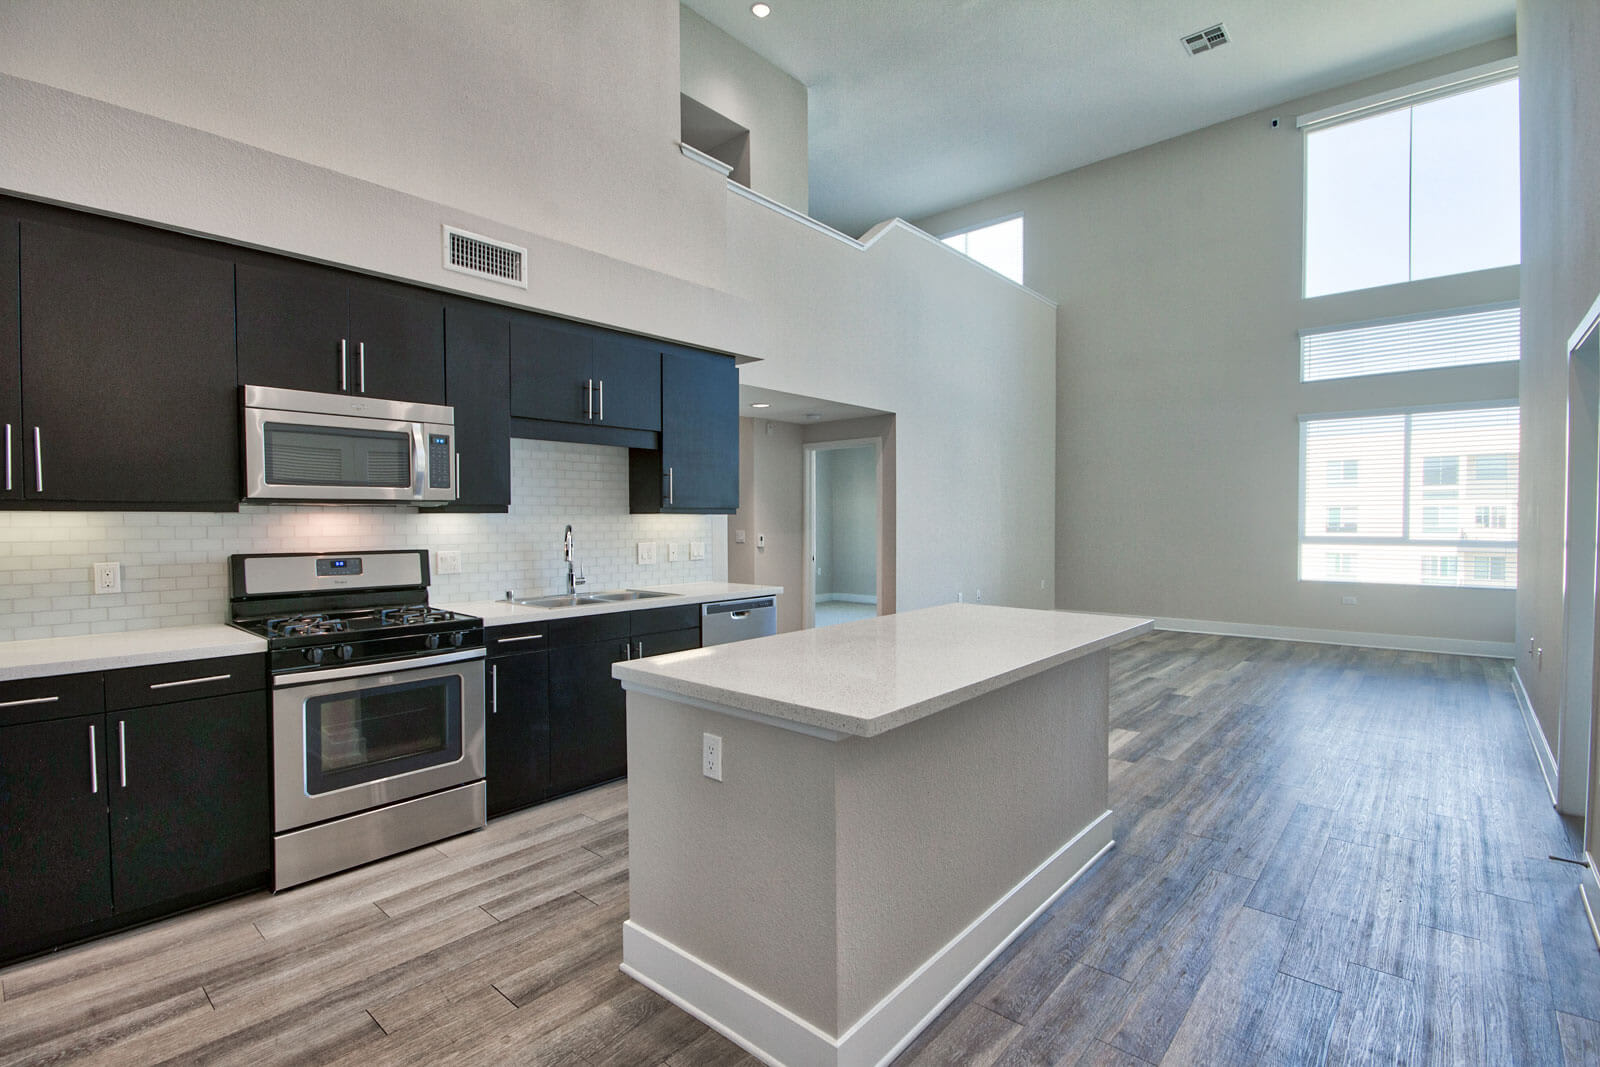 High-End Stainless Steel Appliances at Boardwalk by Windsor, Huntington Beach, California